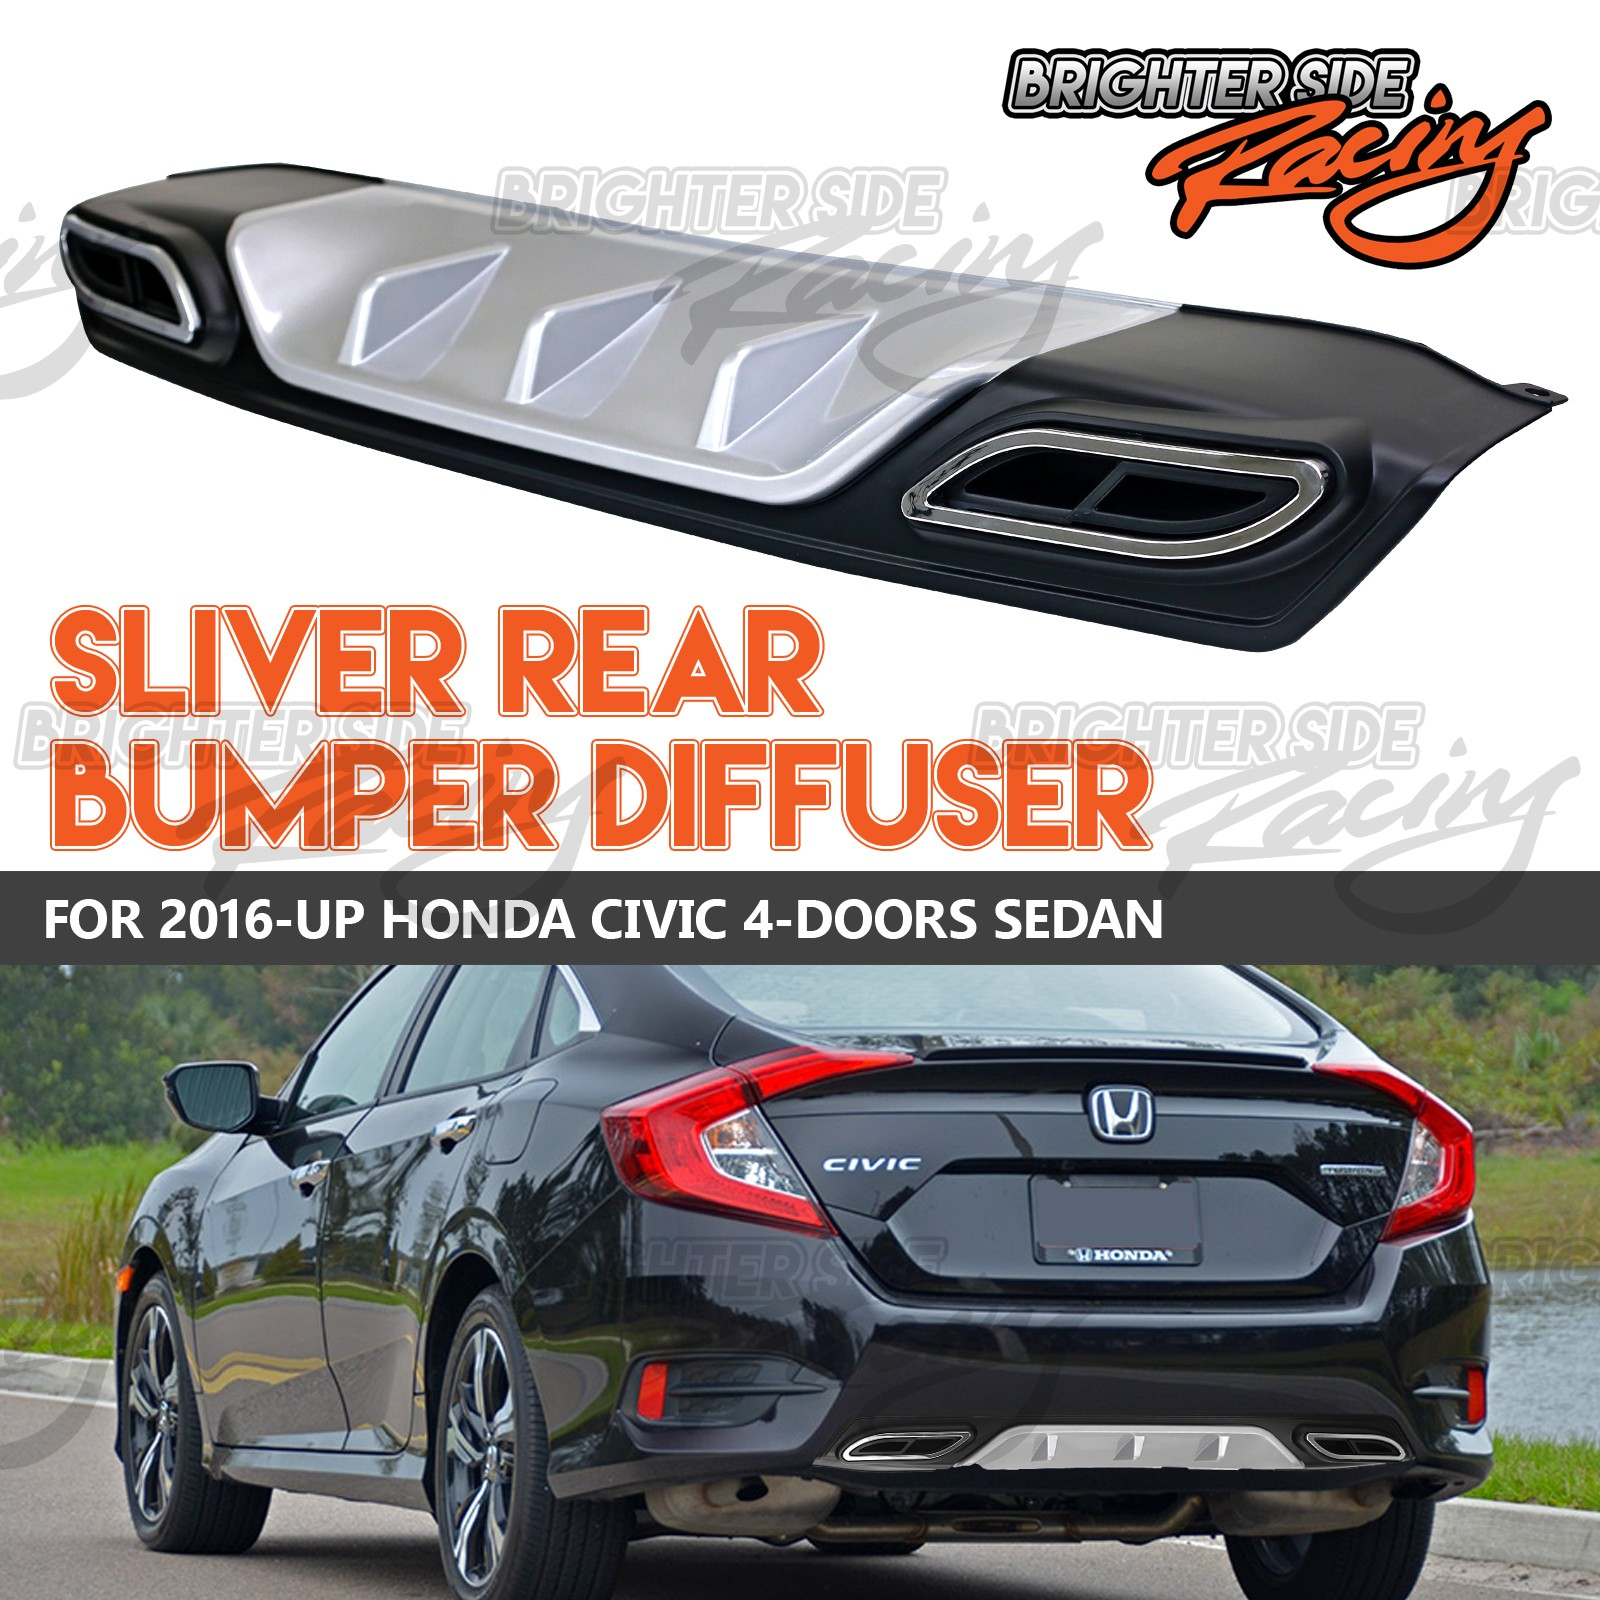 Honda Civic Rear Bumper Diffuser Wiring Diagram Ruud Uomb 084c Made For 2016 17 Sedan Jdm Racing Rh Ebay Com 2000 2017